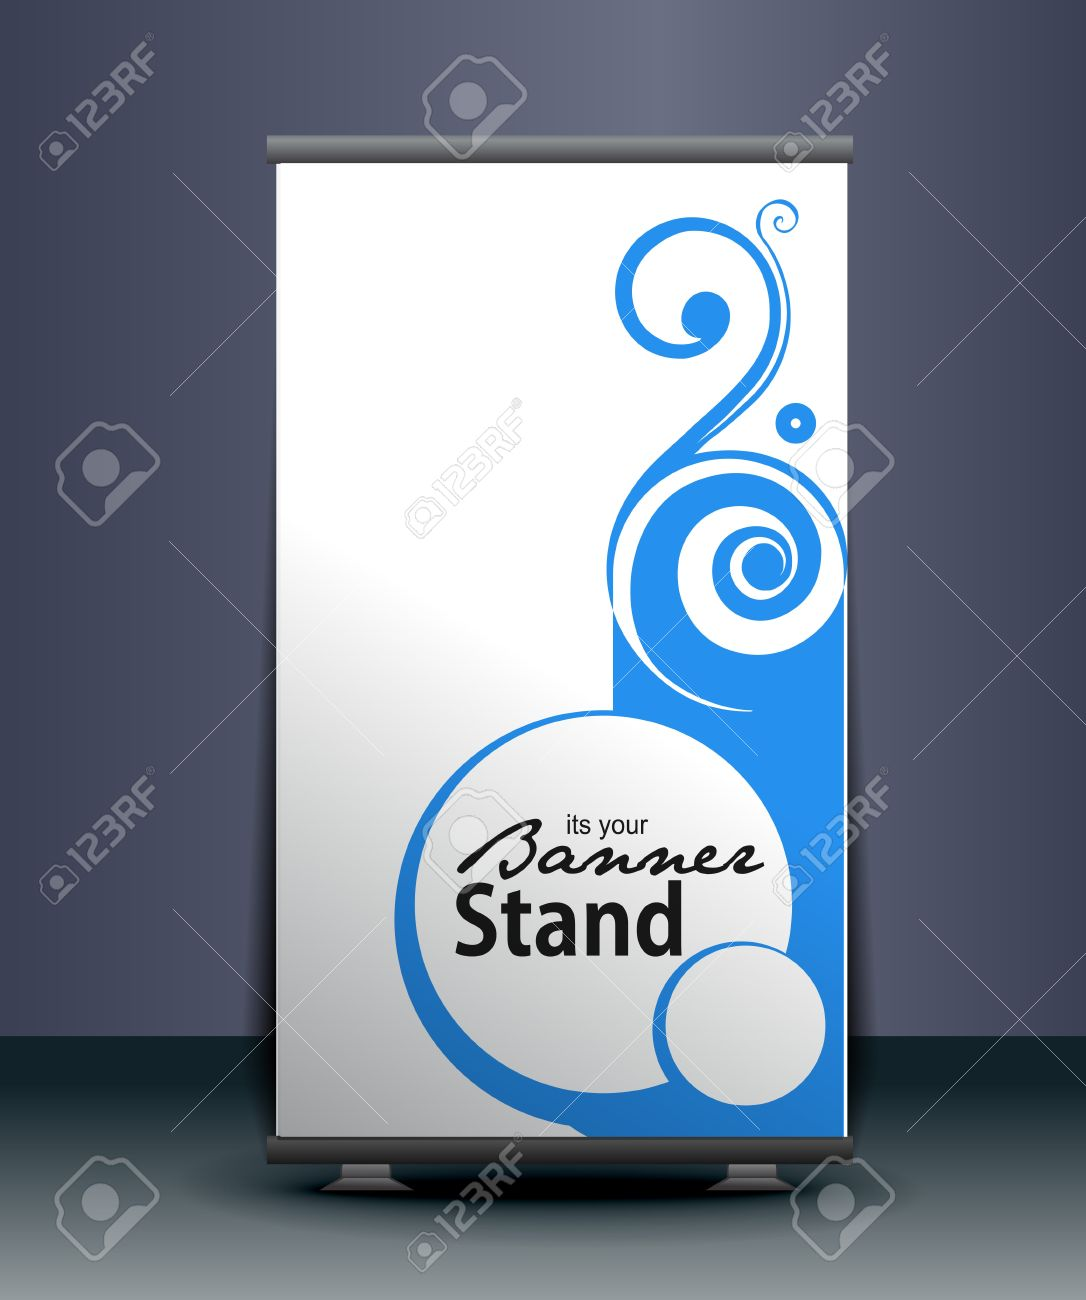 Design vector banner - A Roll Up Display With Stand Banner Template Design Vector Illustration Stock Vector